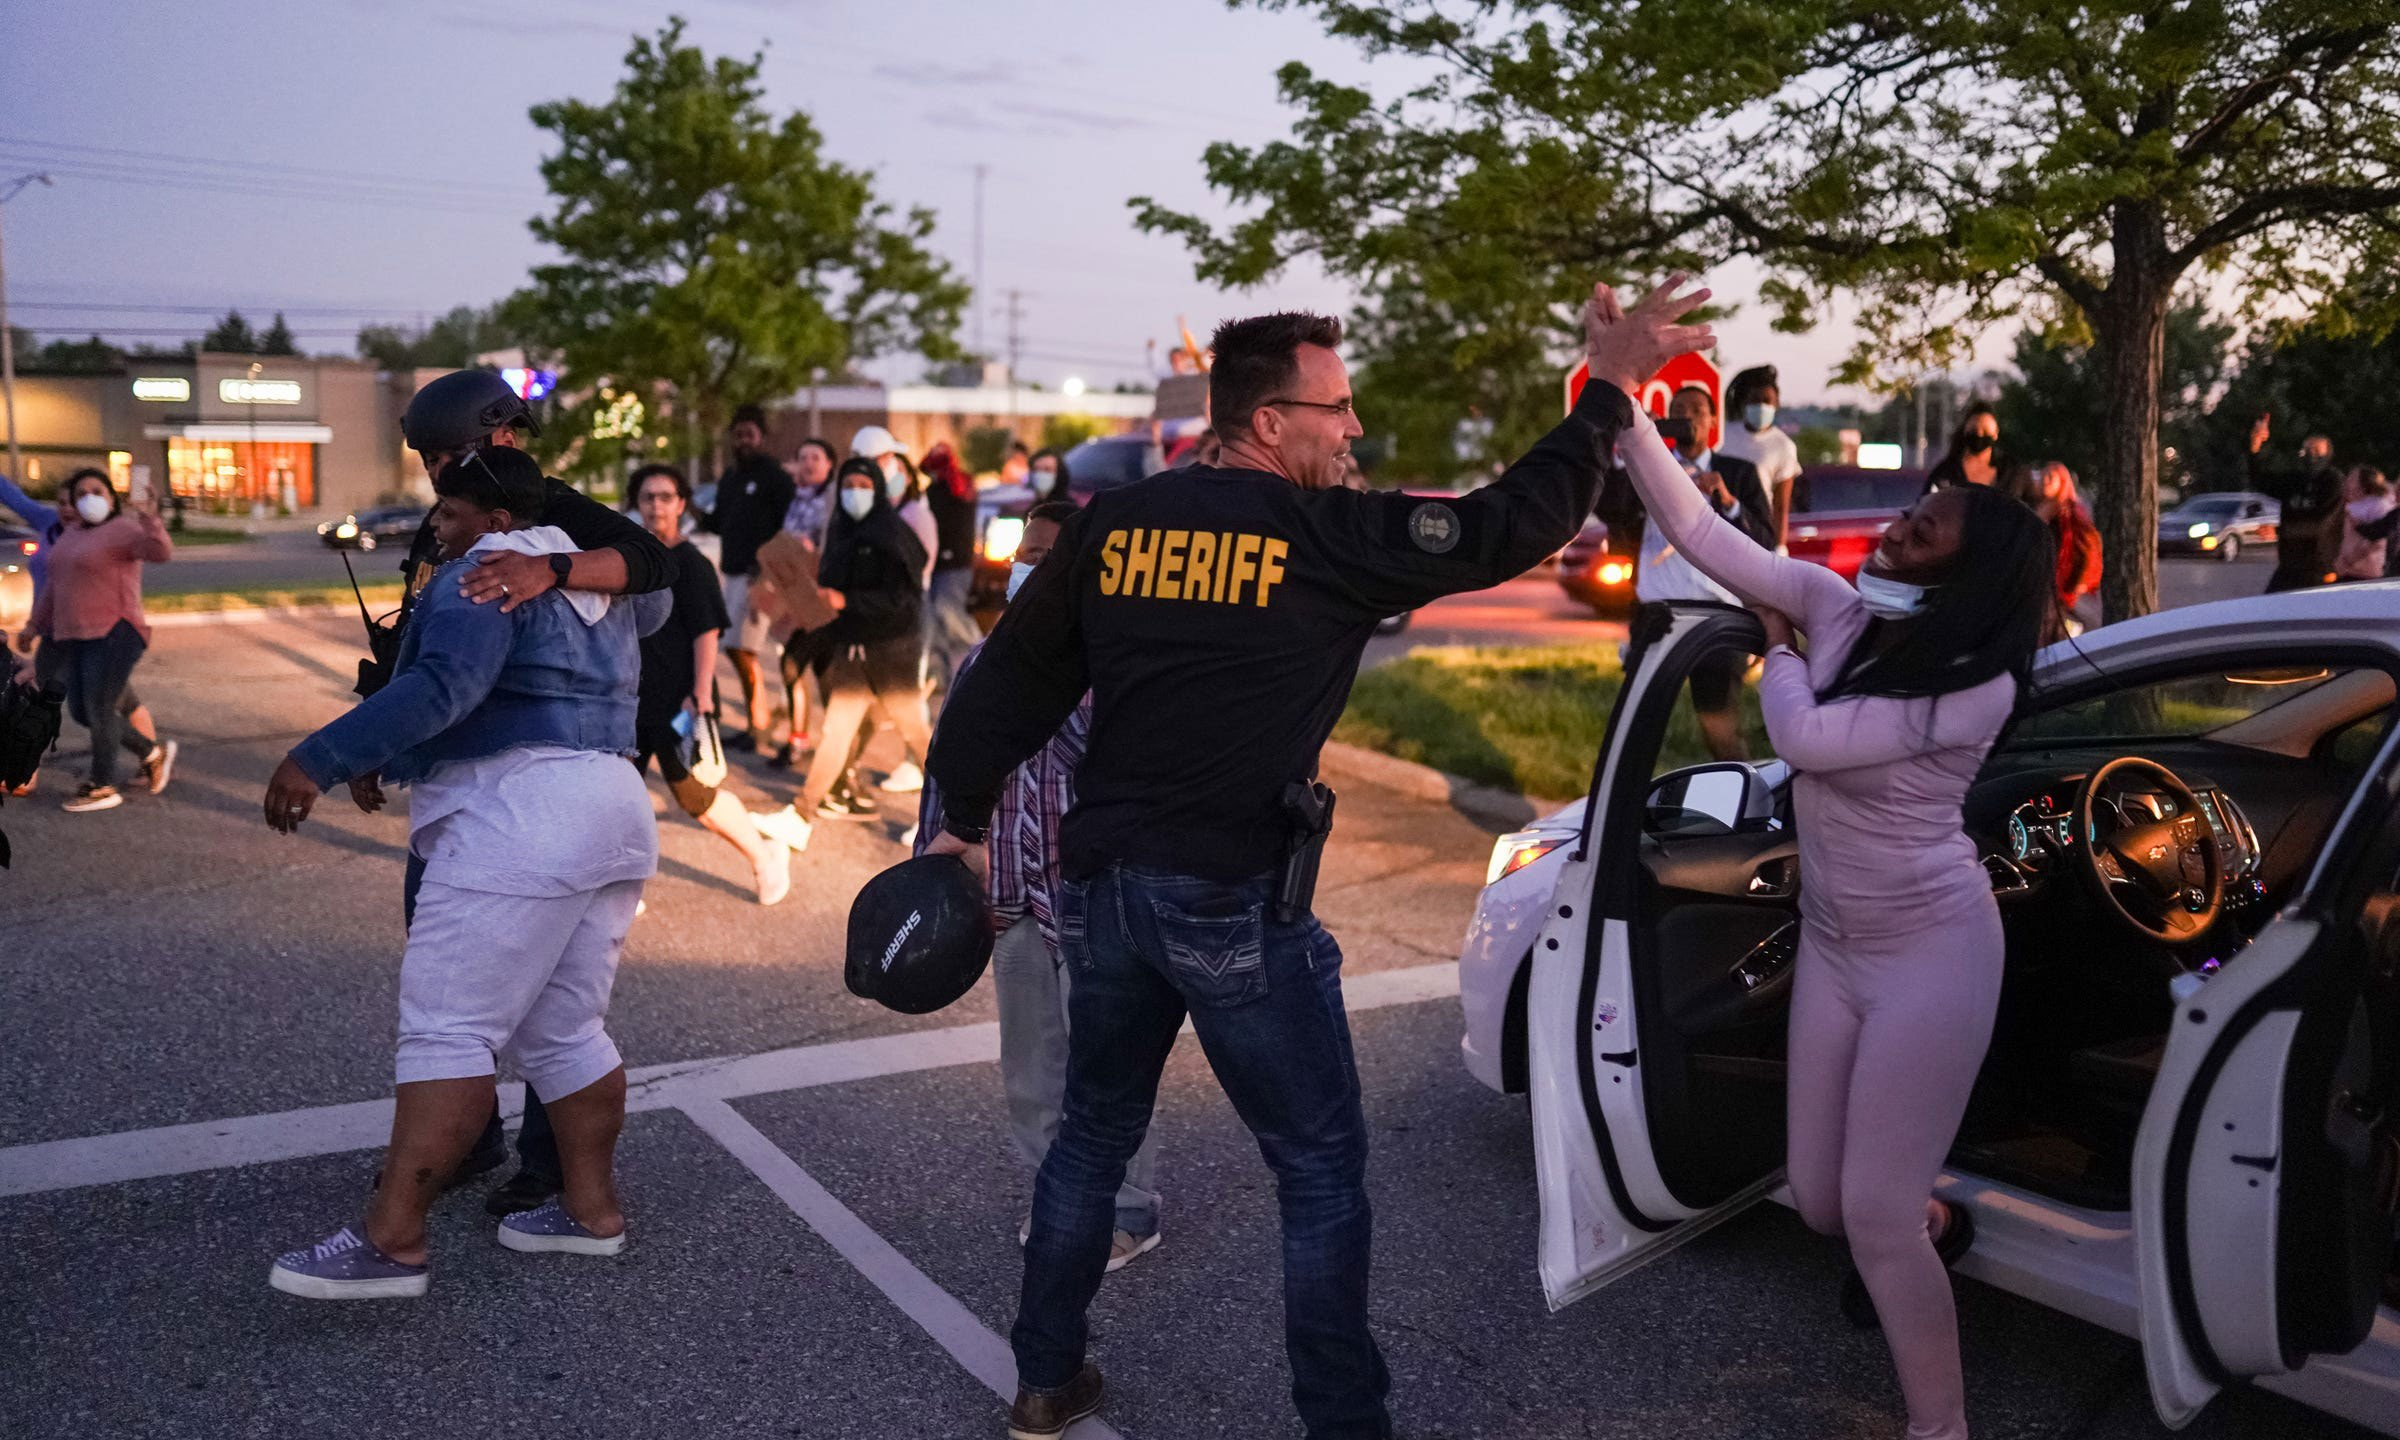 Genesee County Sheriff Chris Swanson high-fives a woman who called his name as he marches with protestors of police brutality and in memory of George Floyd on May 30, 2020, in Flint Township, Michigan. (Ryan Garza/USA Today Network via Reuters)